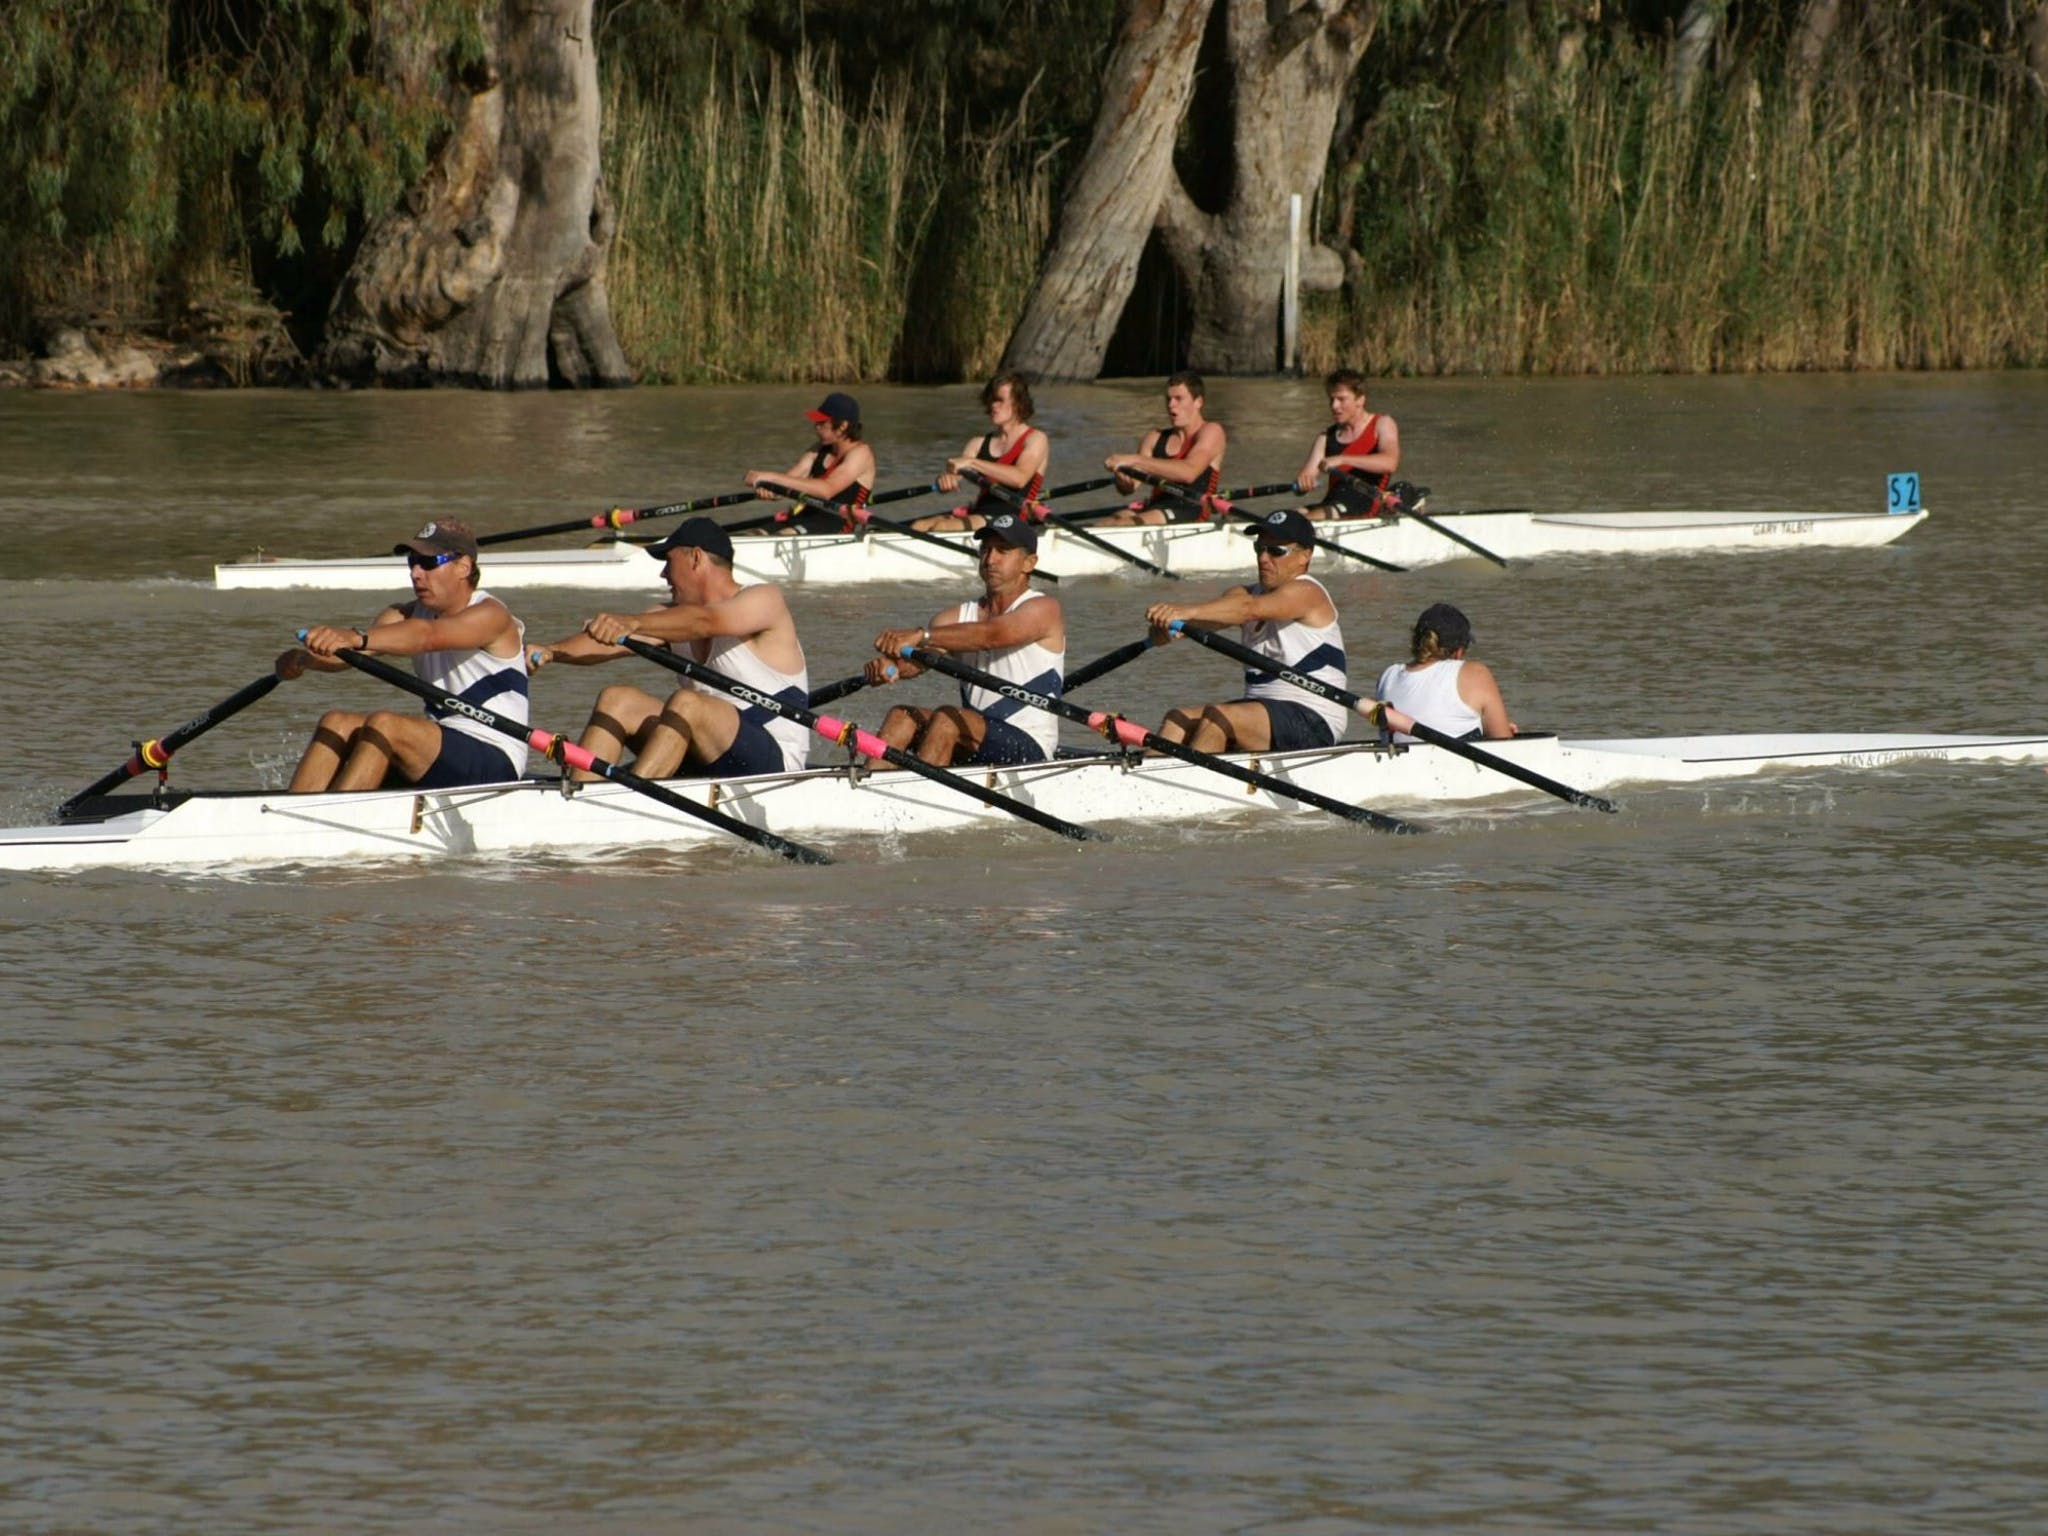 Wentworth Rowing on the Darling River